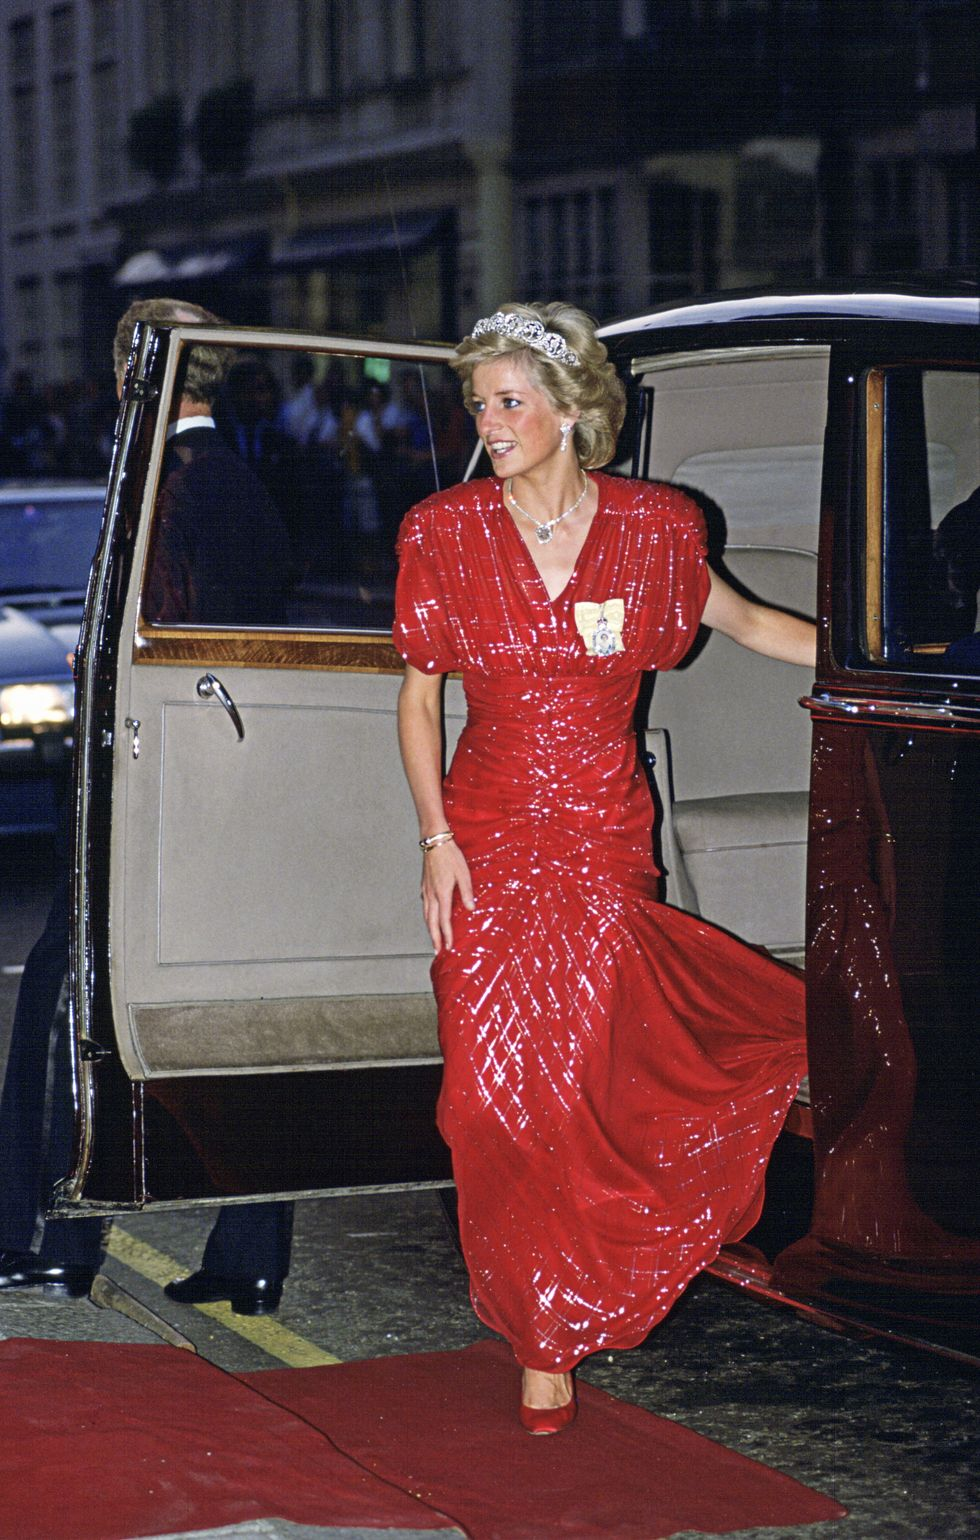 Diana Wearing the Cufff on July 20, 1989 in London, England Diana wore it quite often for daytime events and even some galas.